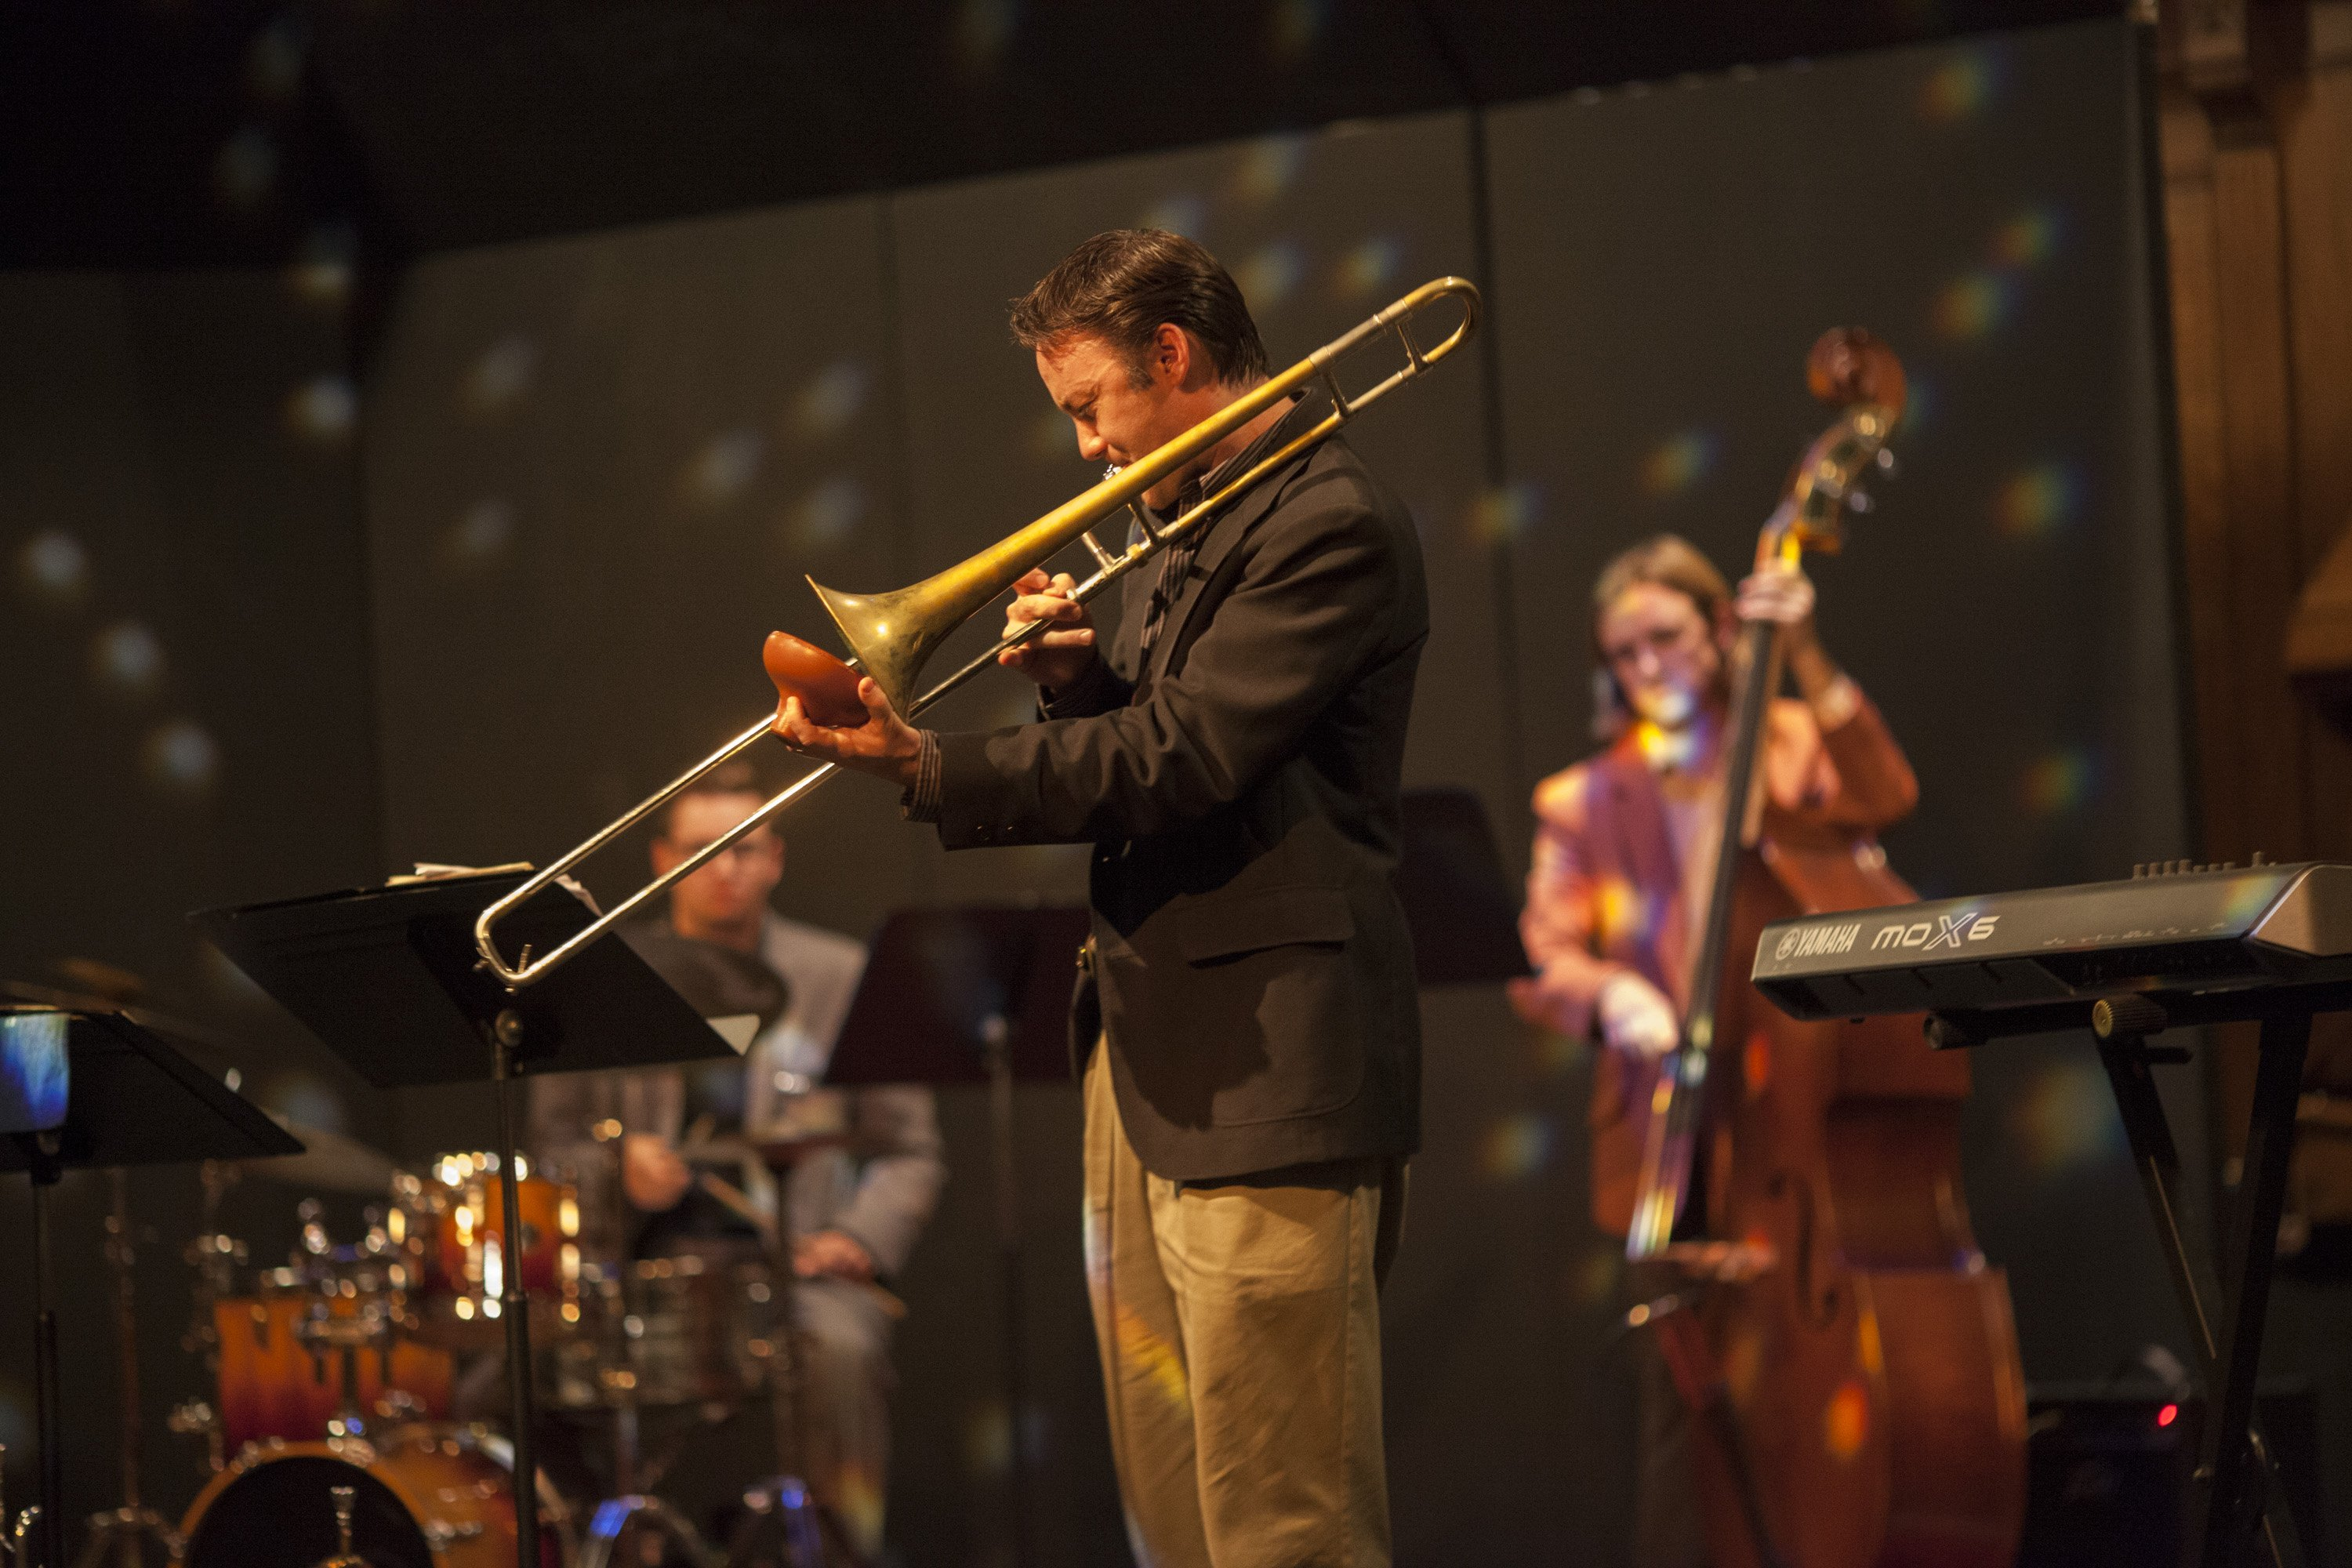 """Dan Barrett, as part of an outreach visit with UMO jazz students, knocked it out of the park with his soulful """"Danny Boy""""."""